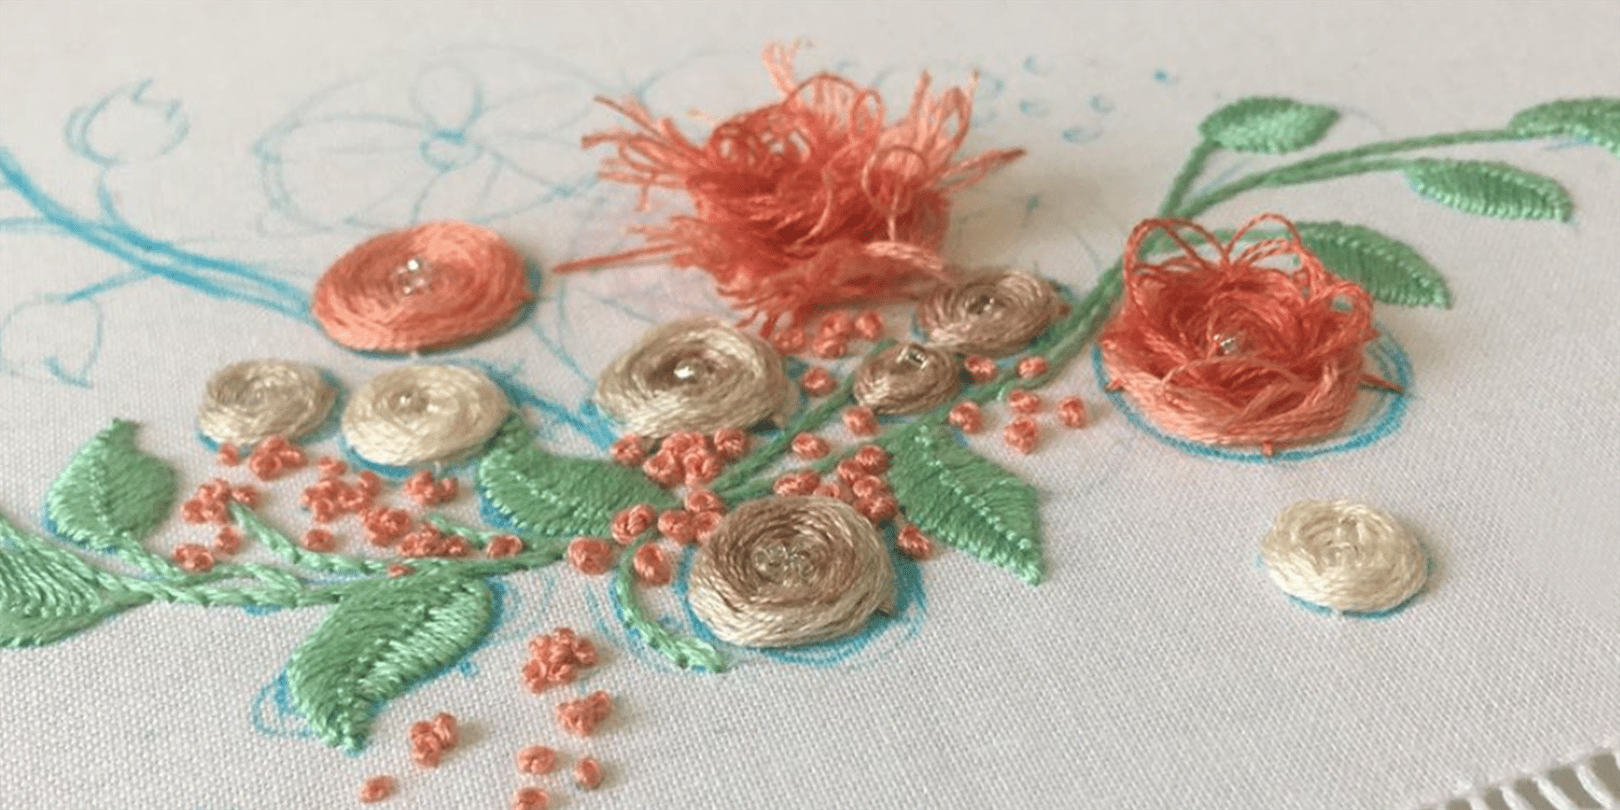 A photo of  salmon-colored flowers being embroidered onto white fabric.